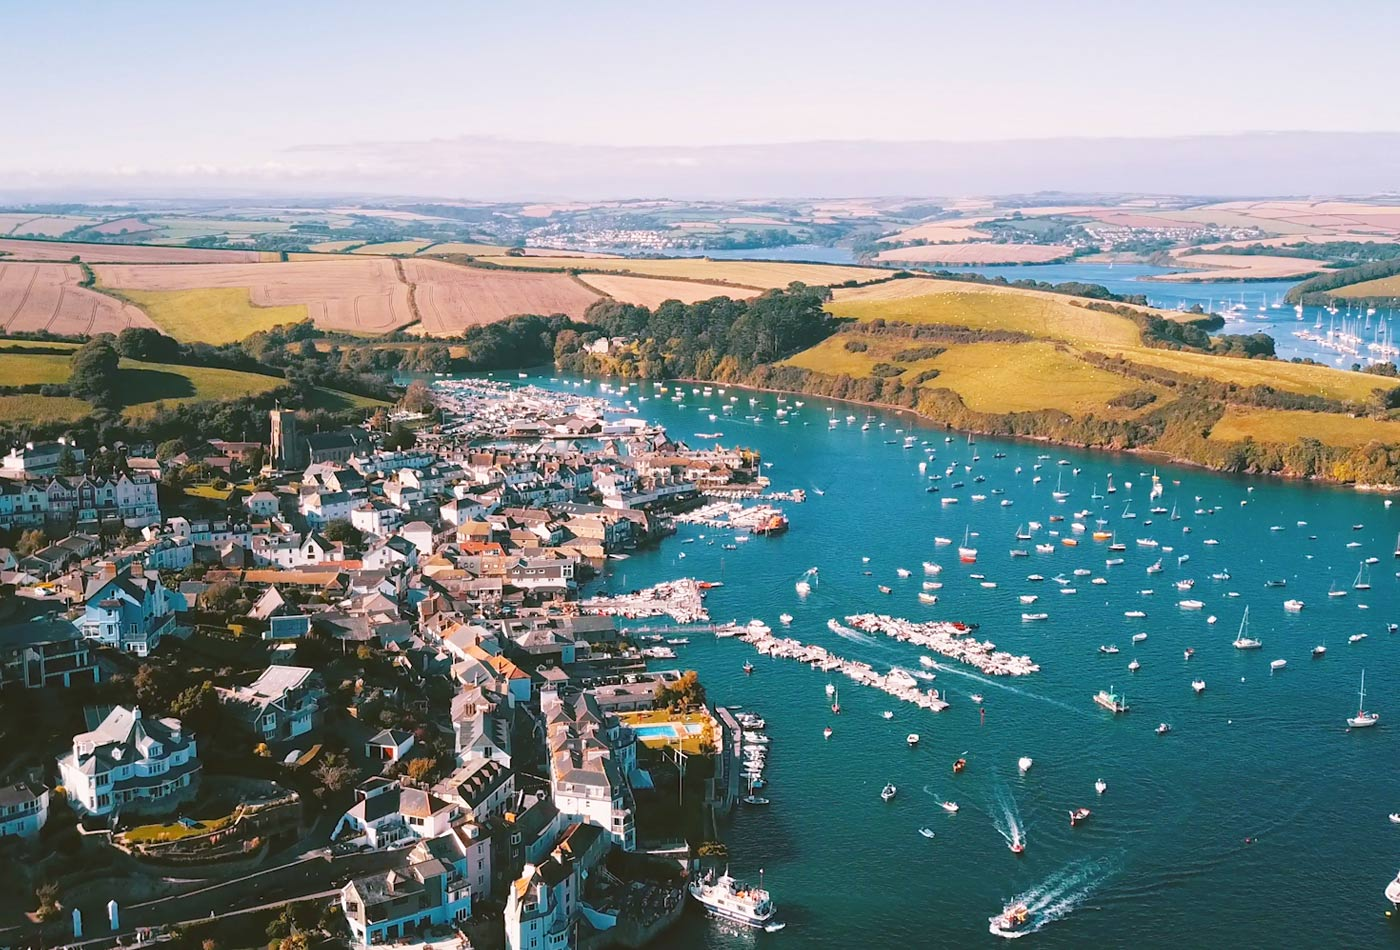 Drone of restaurants in Salcombe and town